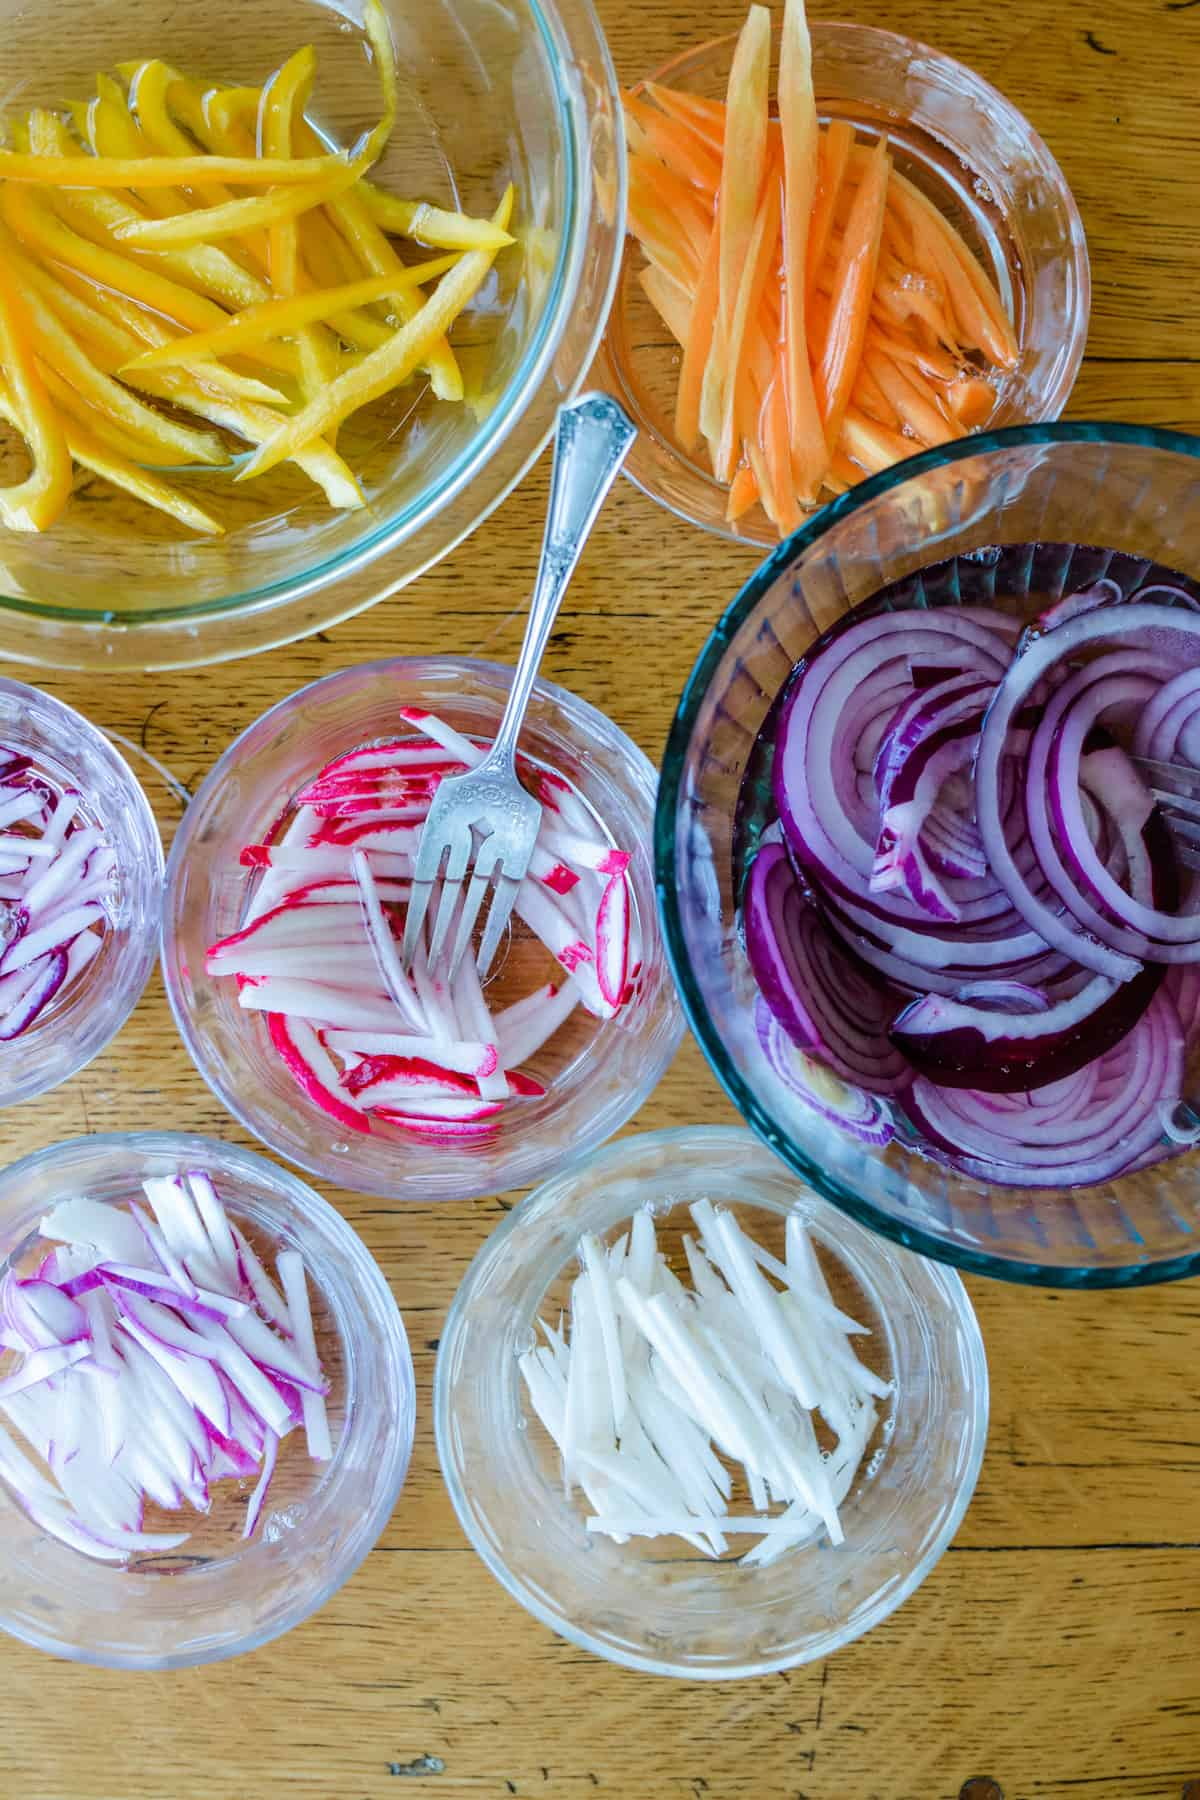 Overhead shot of several glass bowls with different sliced vegetables soaking in pickling liquid in each one.